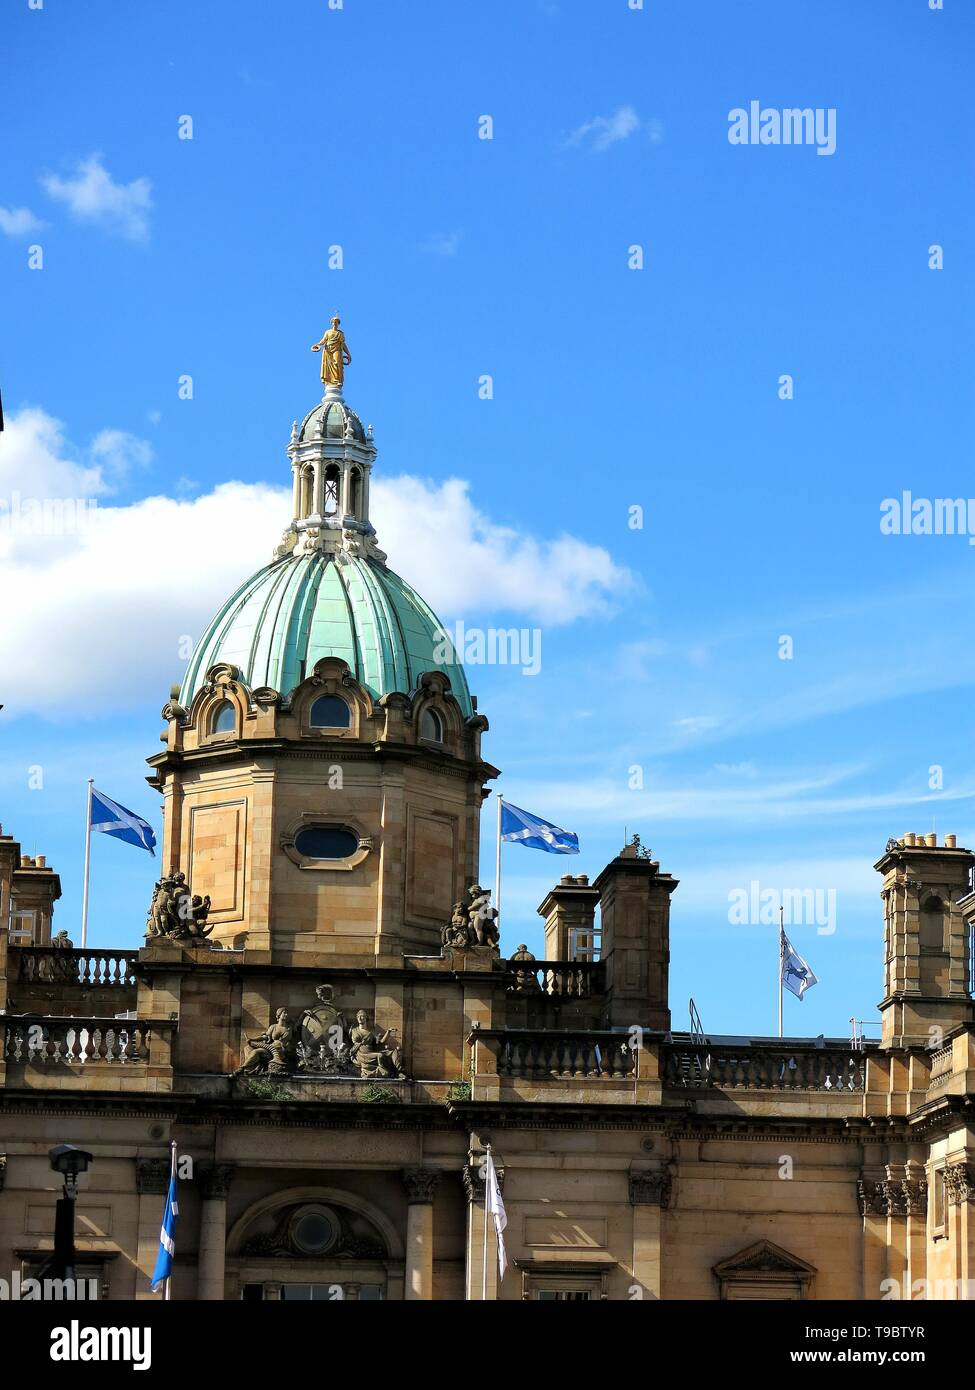 Dome of the building of the old bank of Scotland in Edinburgh, Scotland. - Stock Image